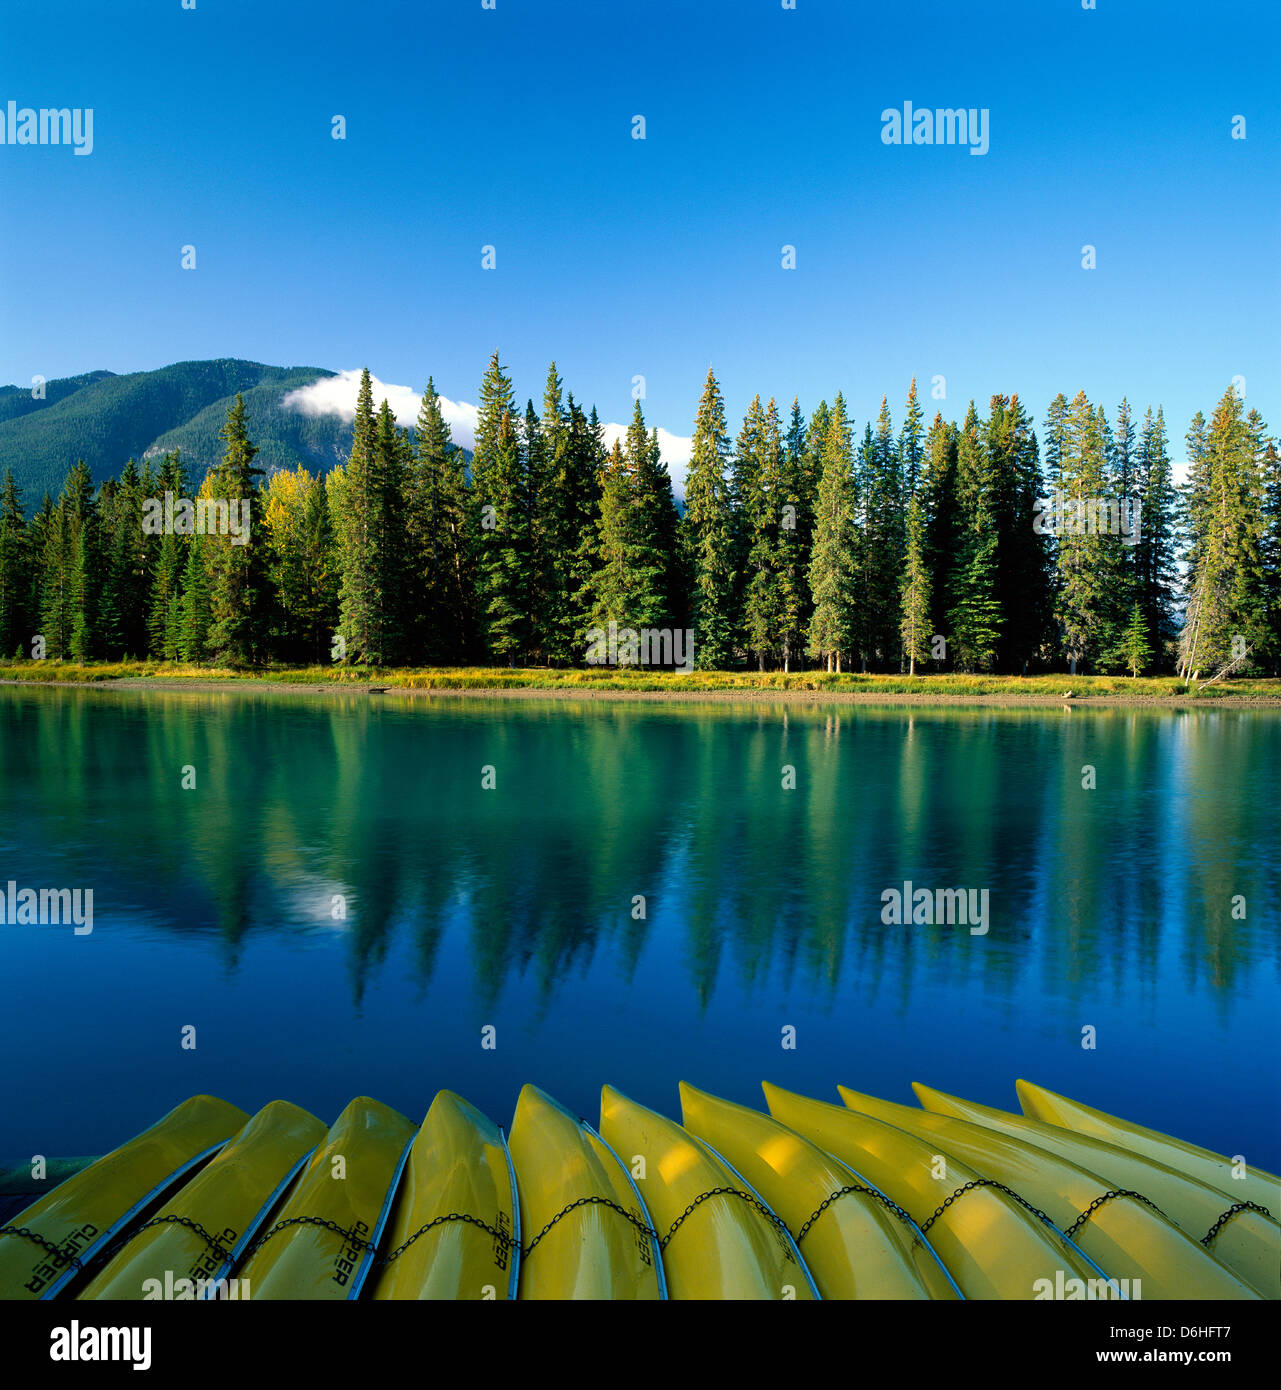 Yellow canoes mirror the reflections of evergreen trees in the Bow River, Banff National Park, Alberta, Canada - Stock Image